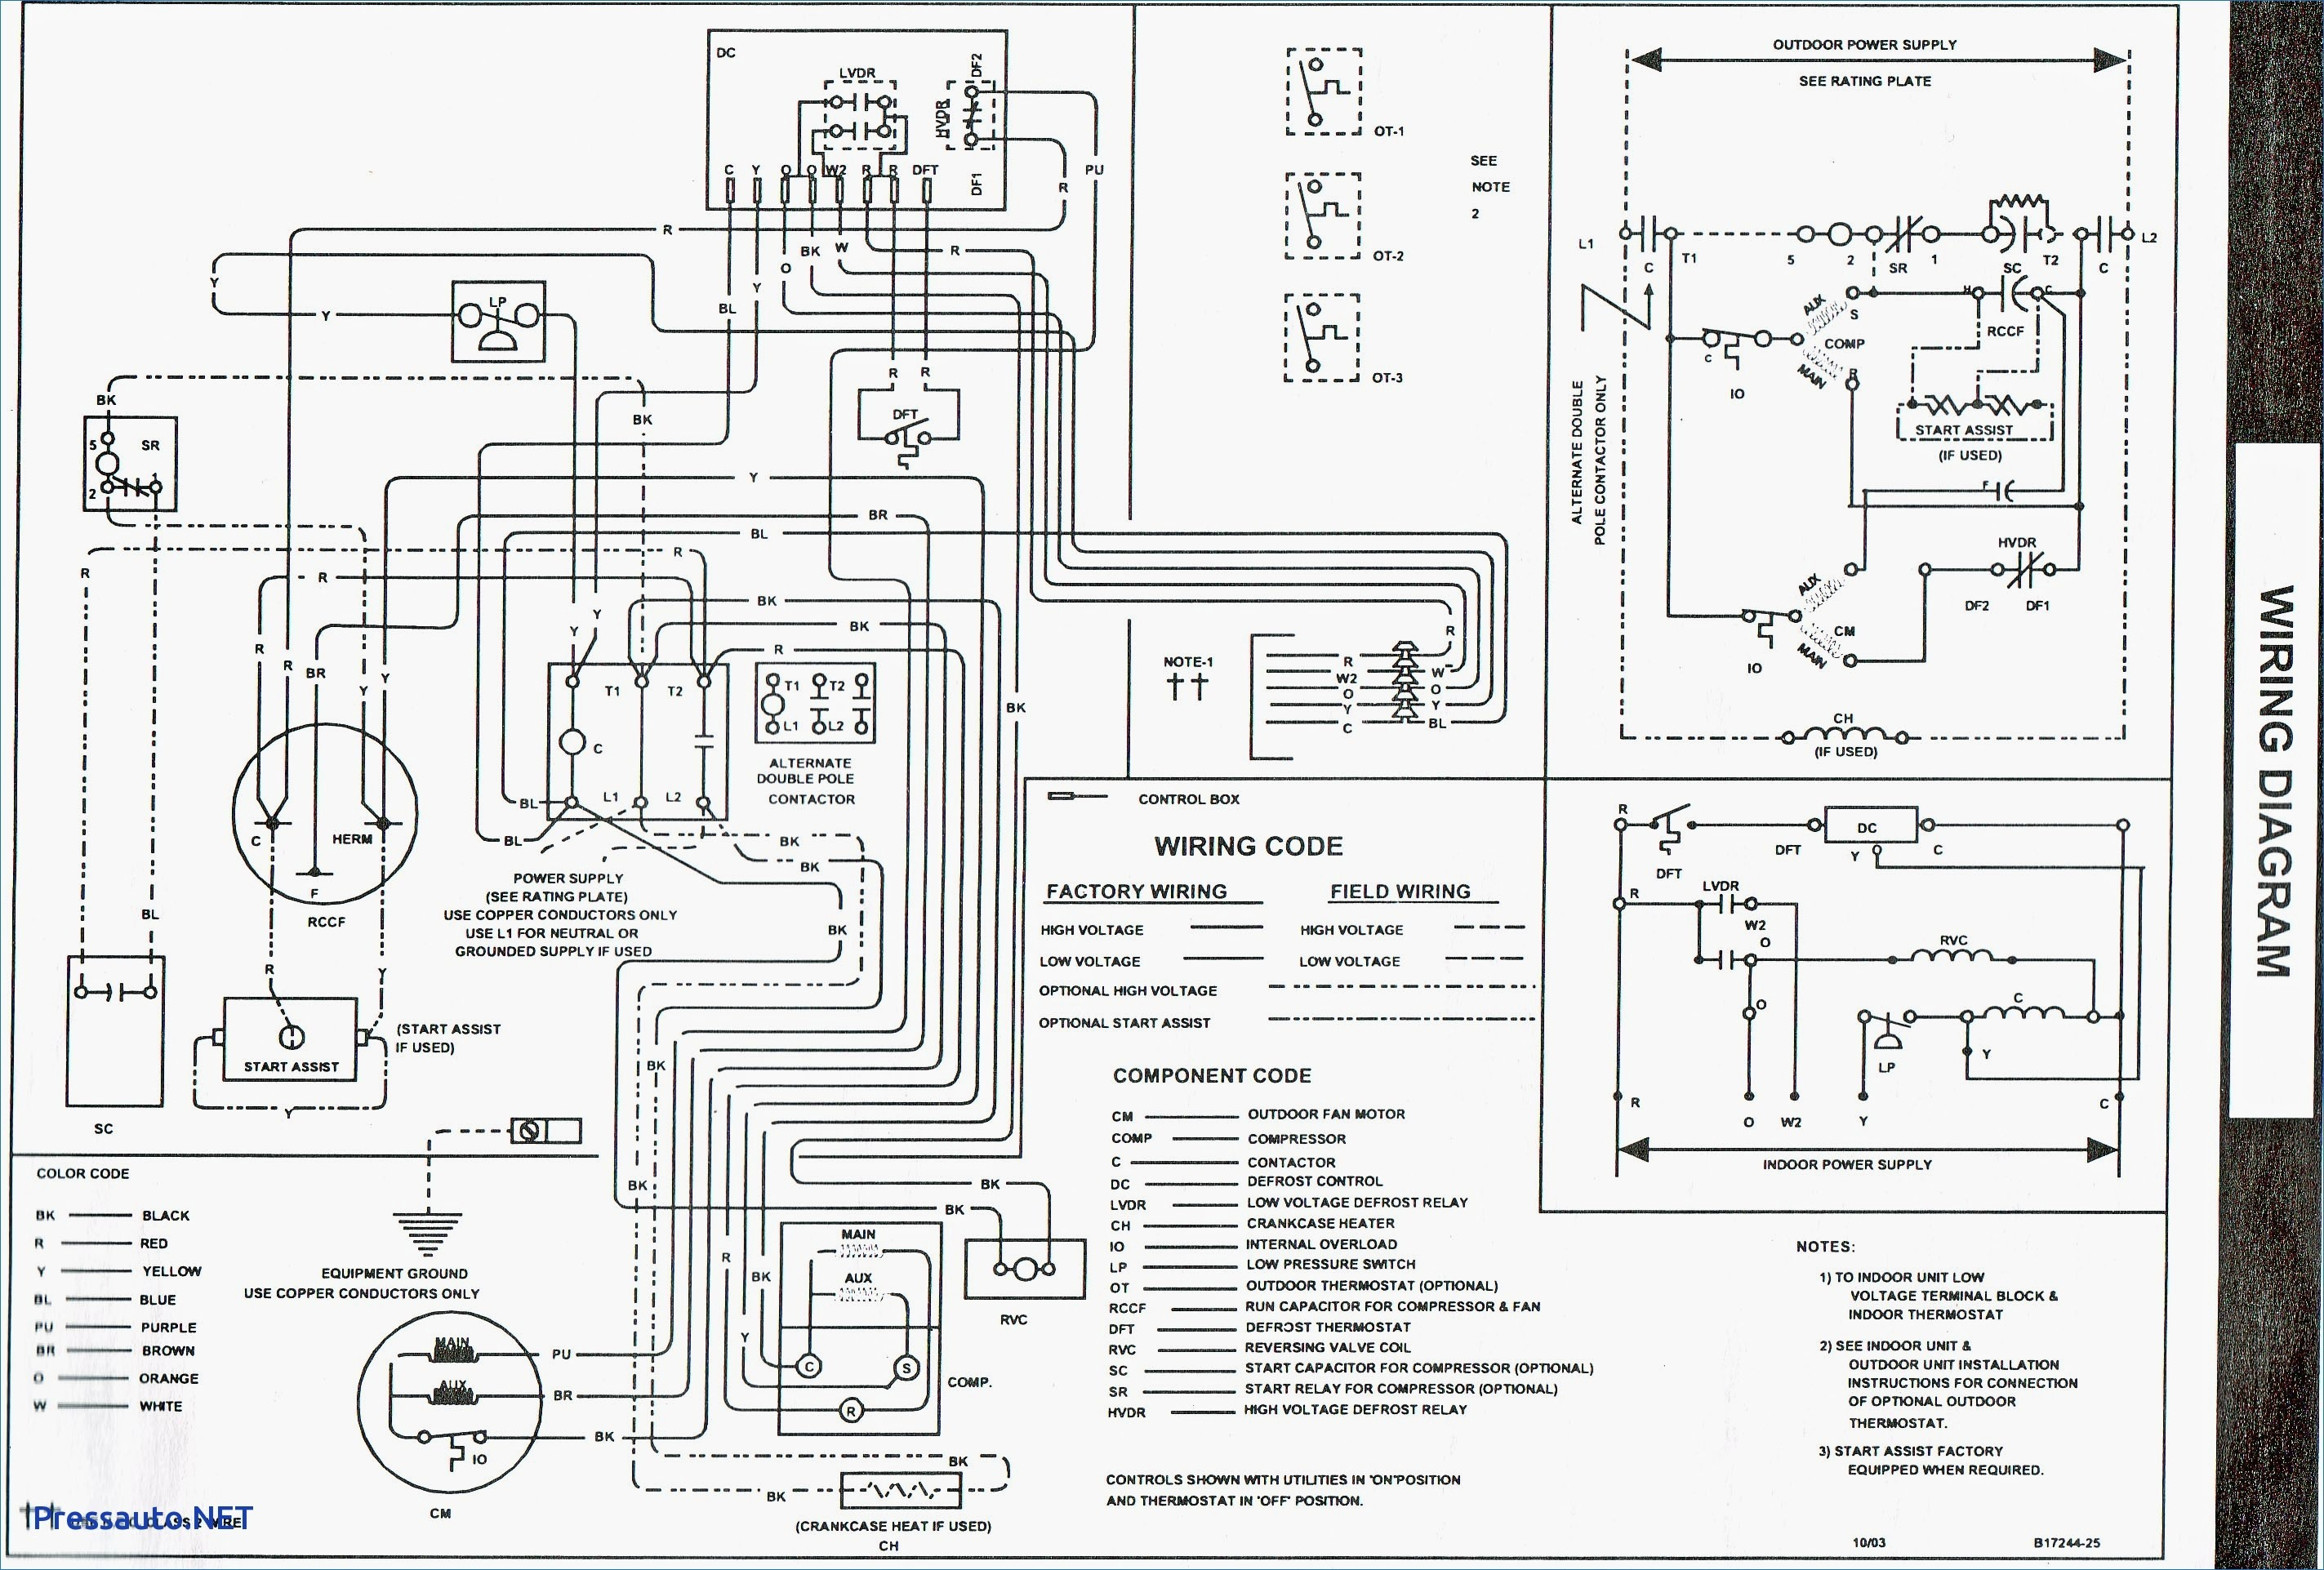 Get Goodman Furnace Control Board Wiring Diagram Sample